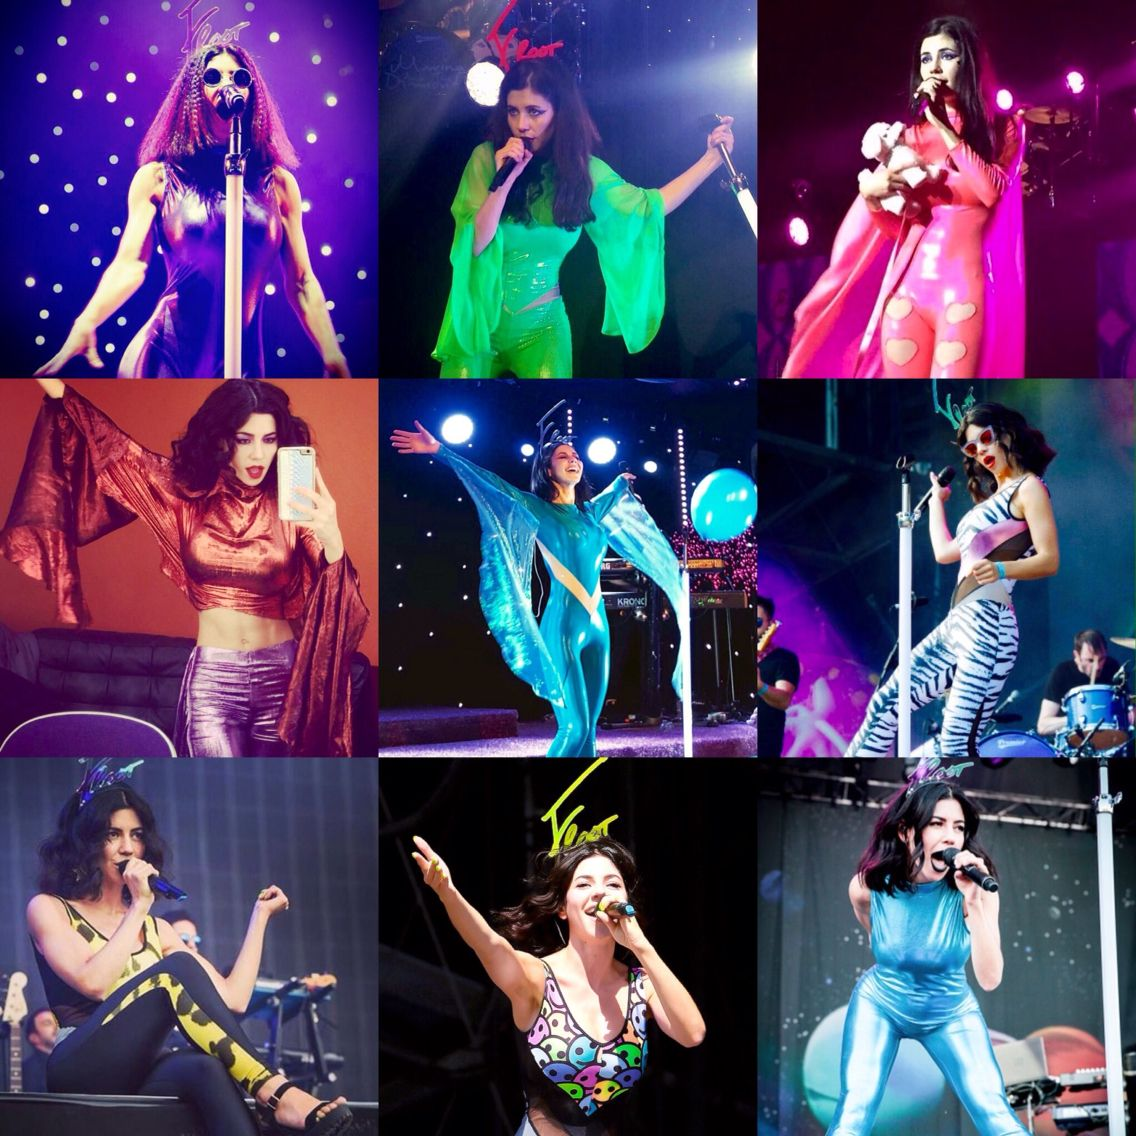 Goodbye to the Froot Era. Beautiful, bright and colourful just like Marina herself. Until the next era